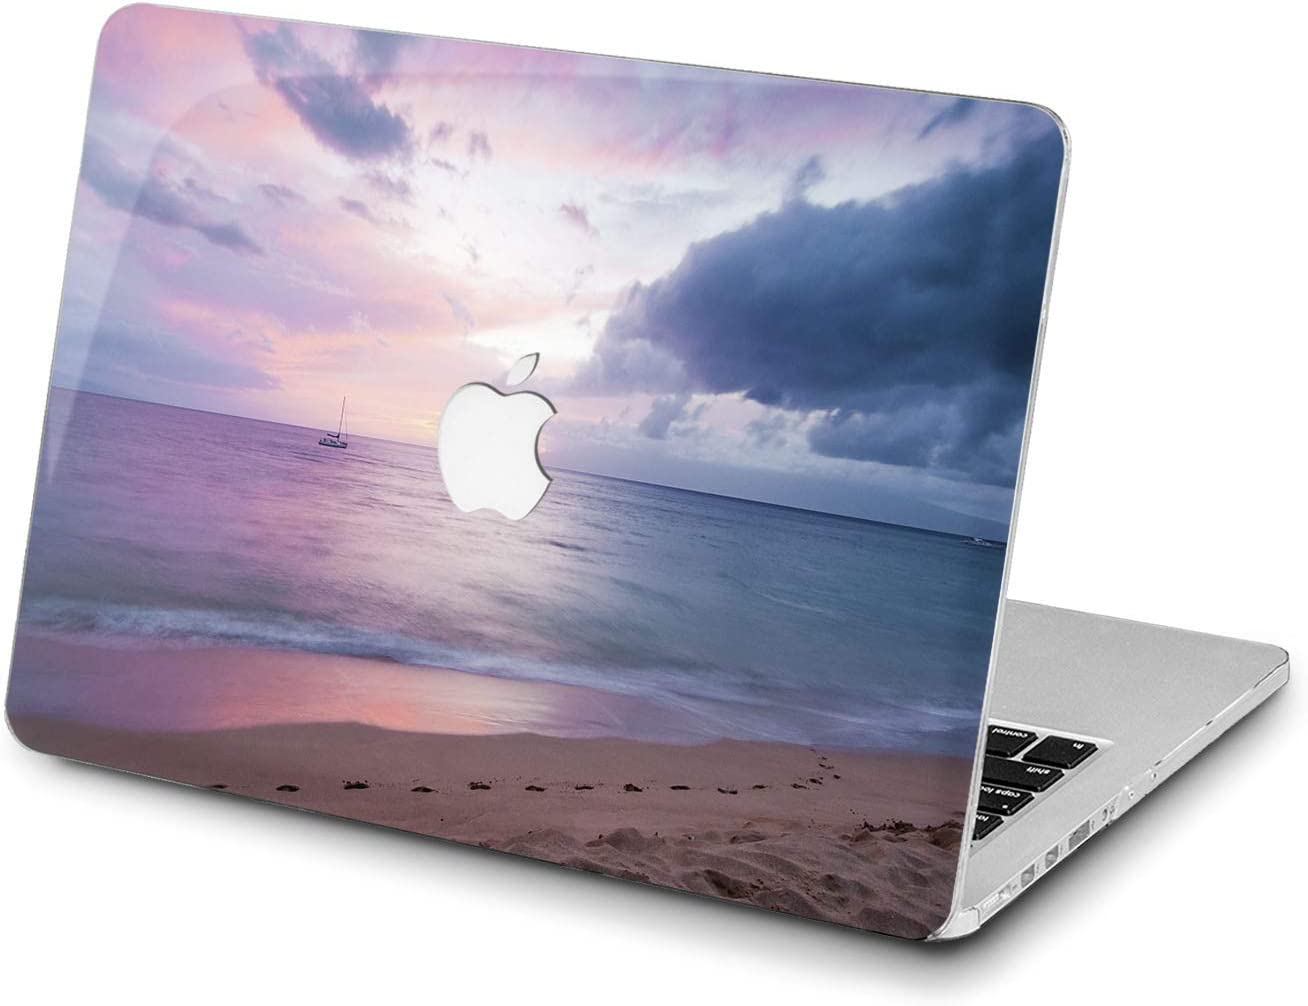 Lex Altern Hard Case for Apple MacBook Pro 15 Air 13 inch Mac Retina 12 11 2020 2019 2018 2017 2016 Beach Laptop Cover Plastic Seaside Sky Pink Purple Purple Horizon Natural Shell Girls Print Ocean